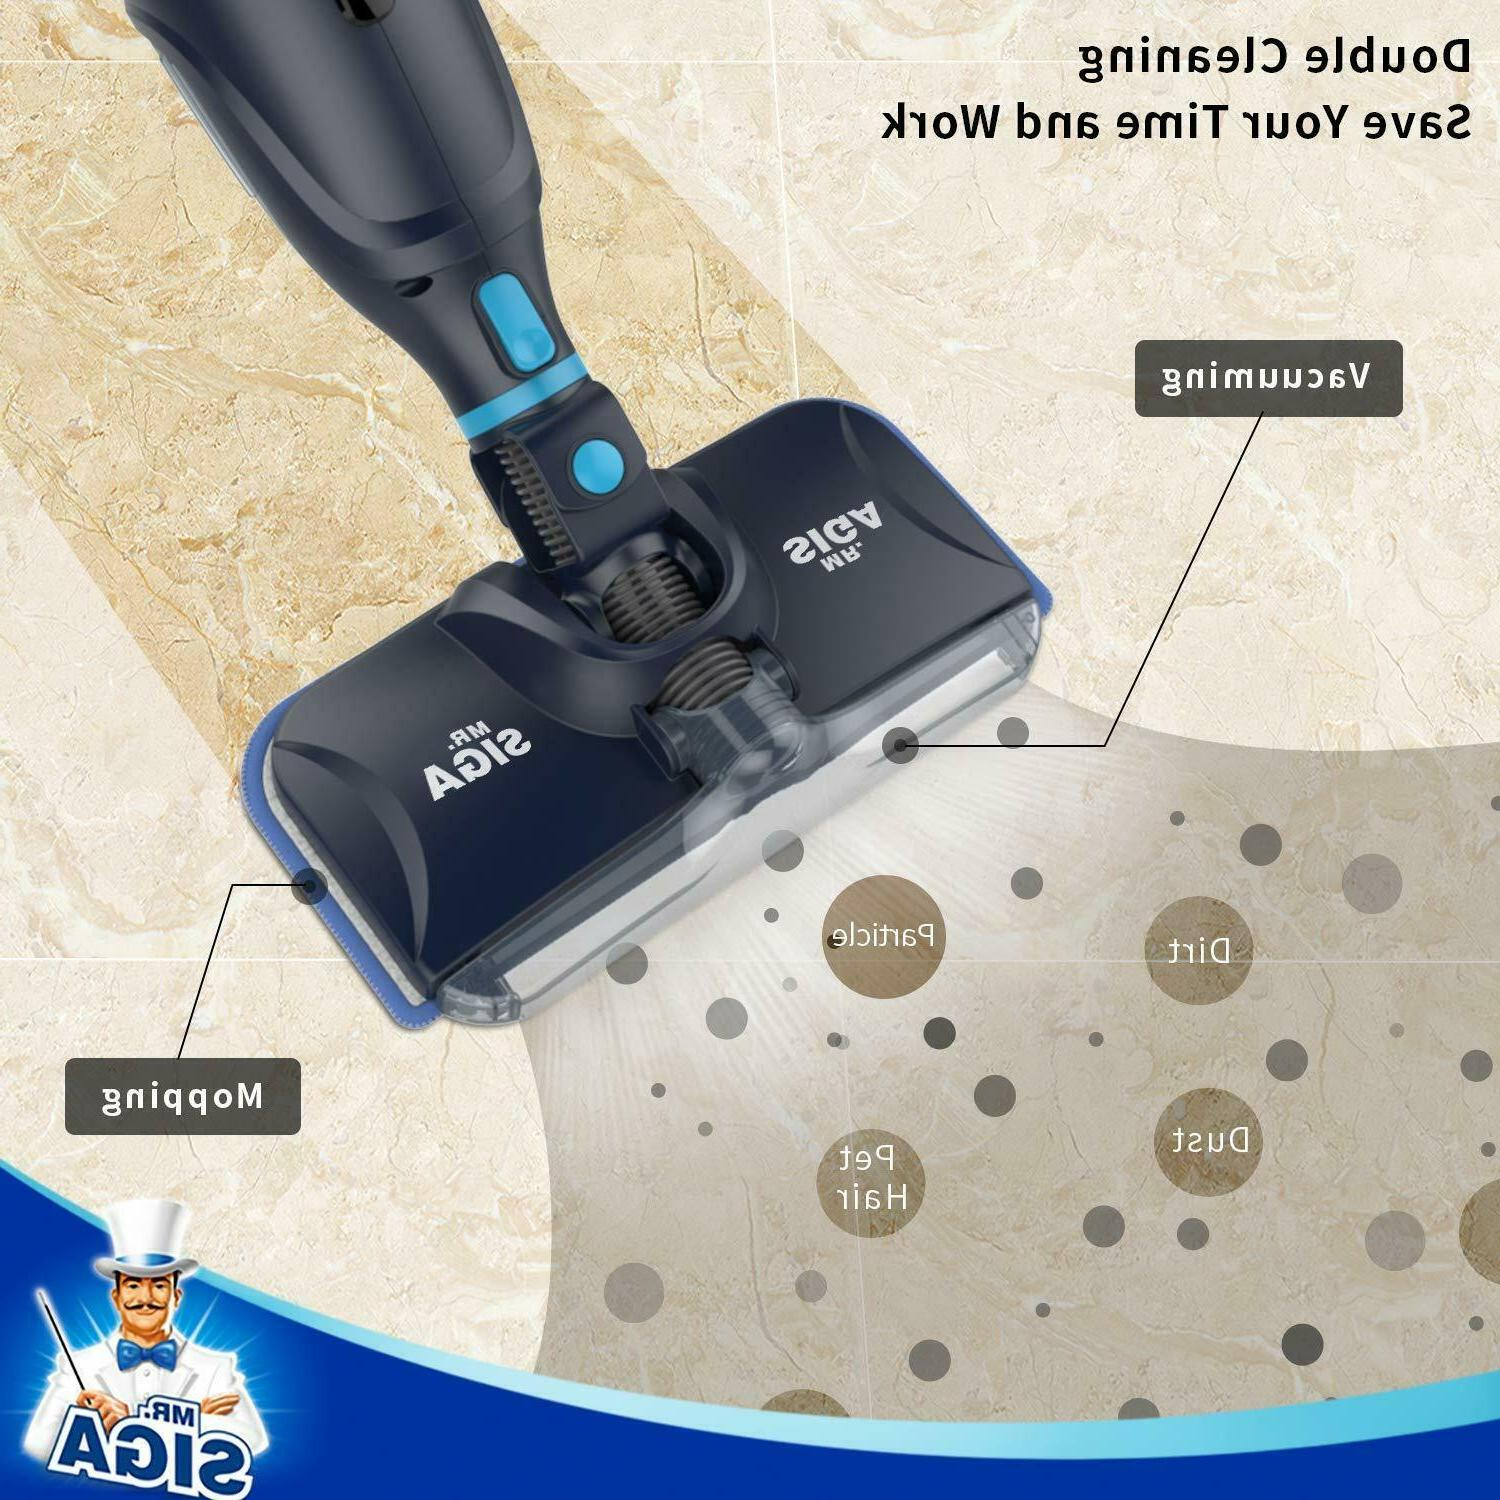 MR.SIGA 3 Cordless Rechargeable Lightweight Cleaner